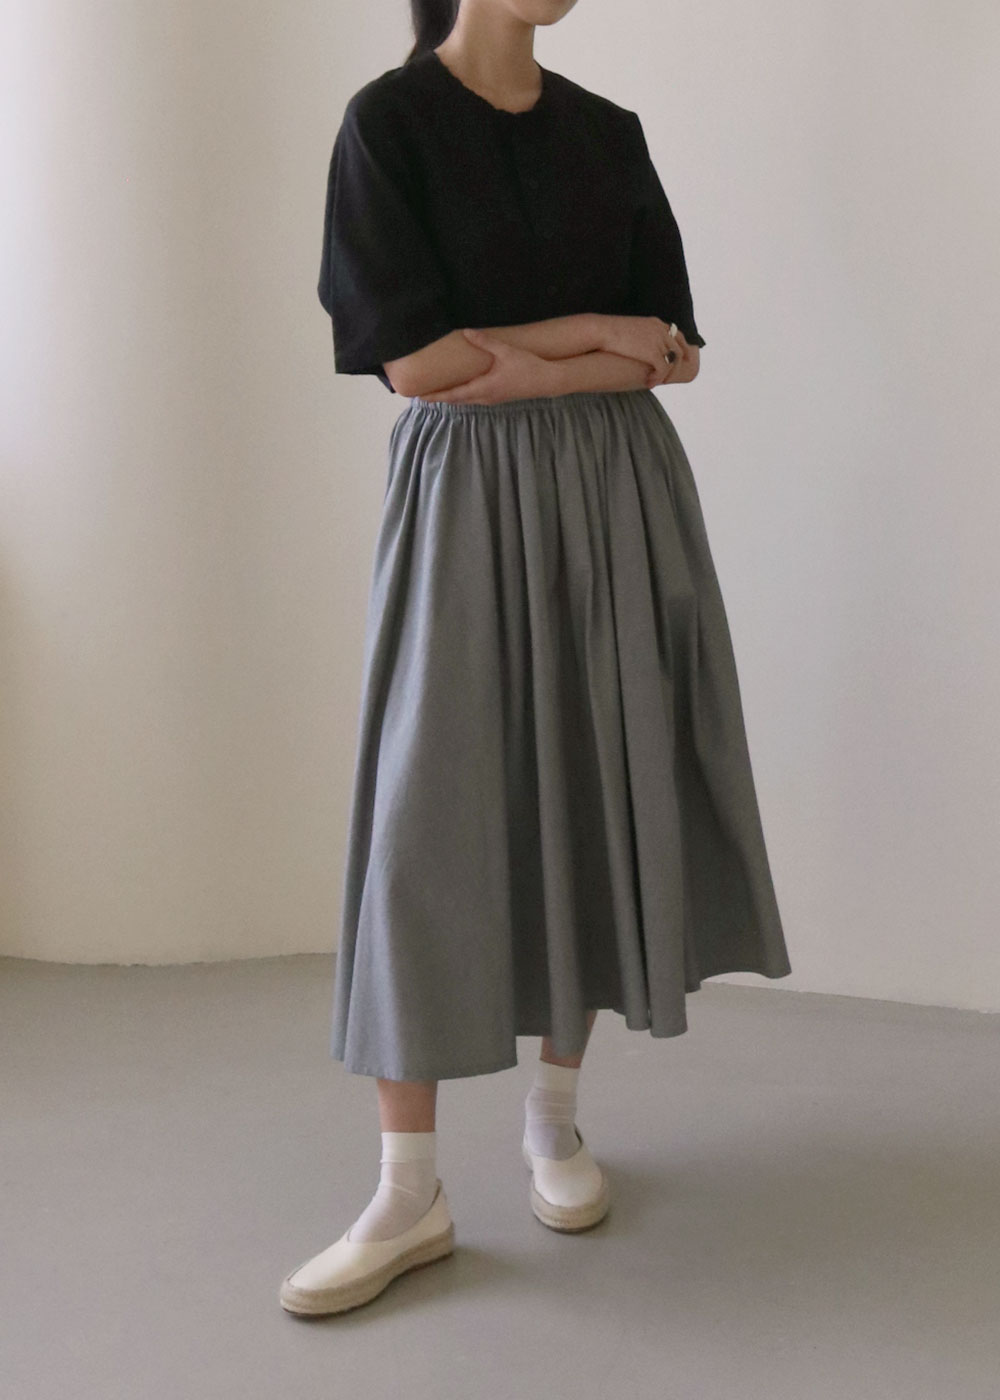 COTTON HOUNDSTOOTH / CIRCULAR SKIRT